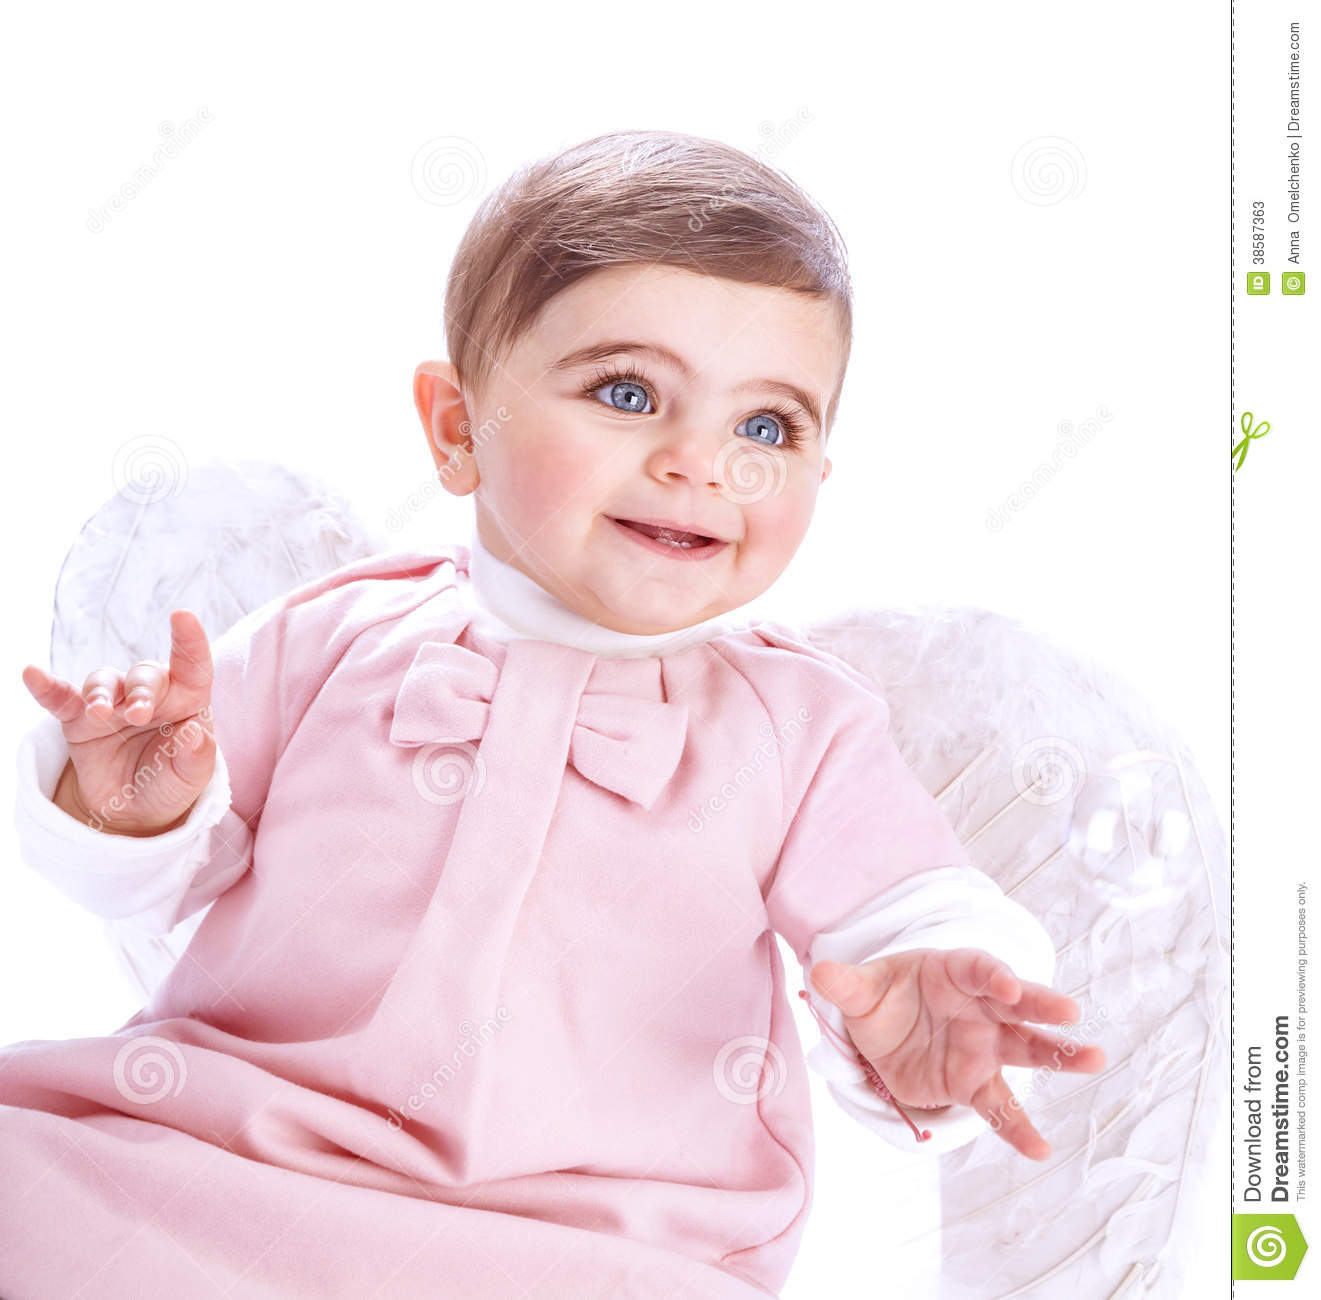 738085f63 Cute baby angel stock image. Image of background